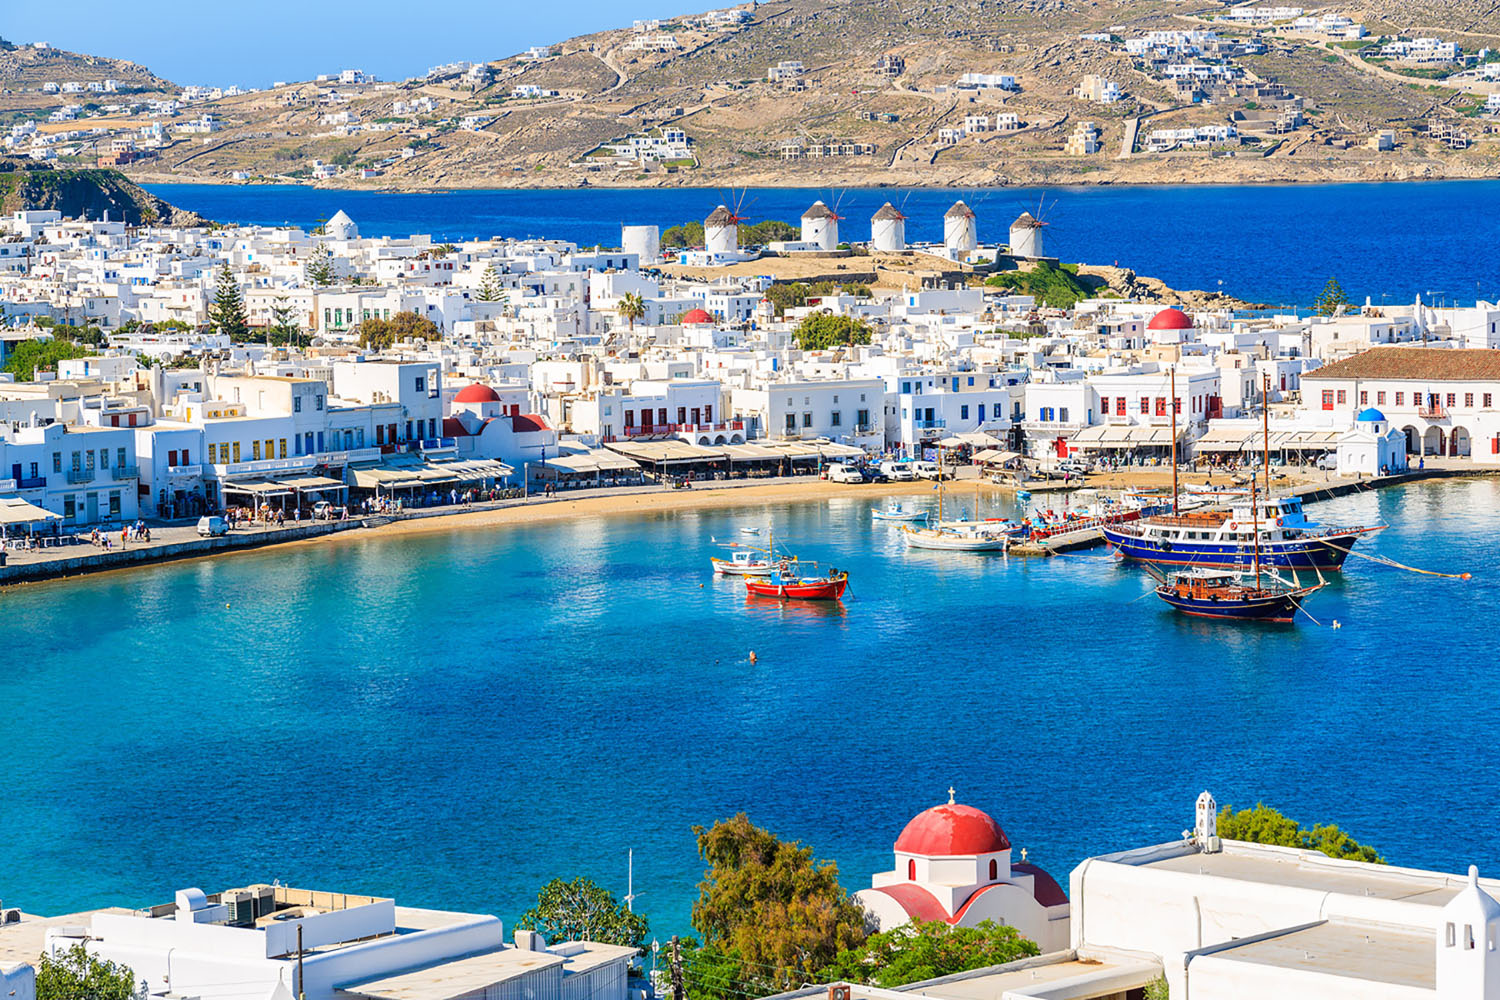 Mykonos looks like a scene straight from a postcard.